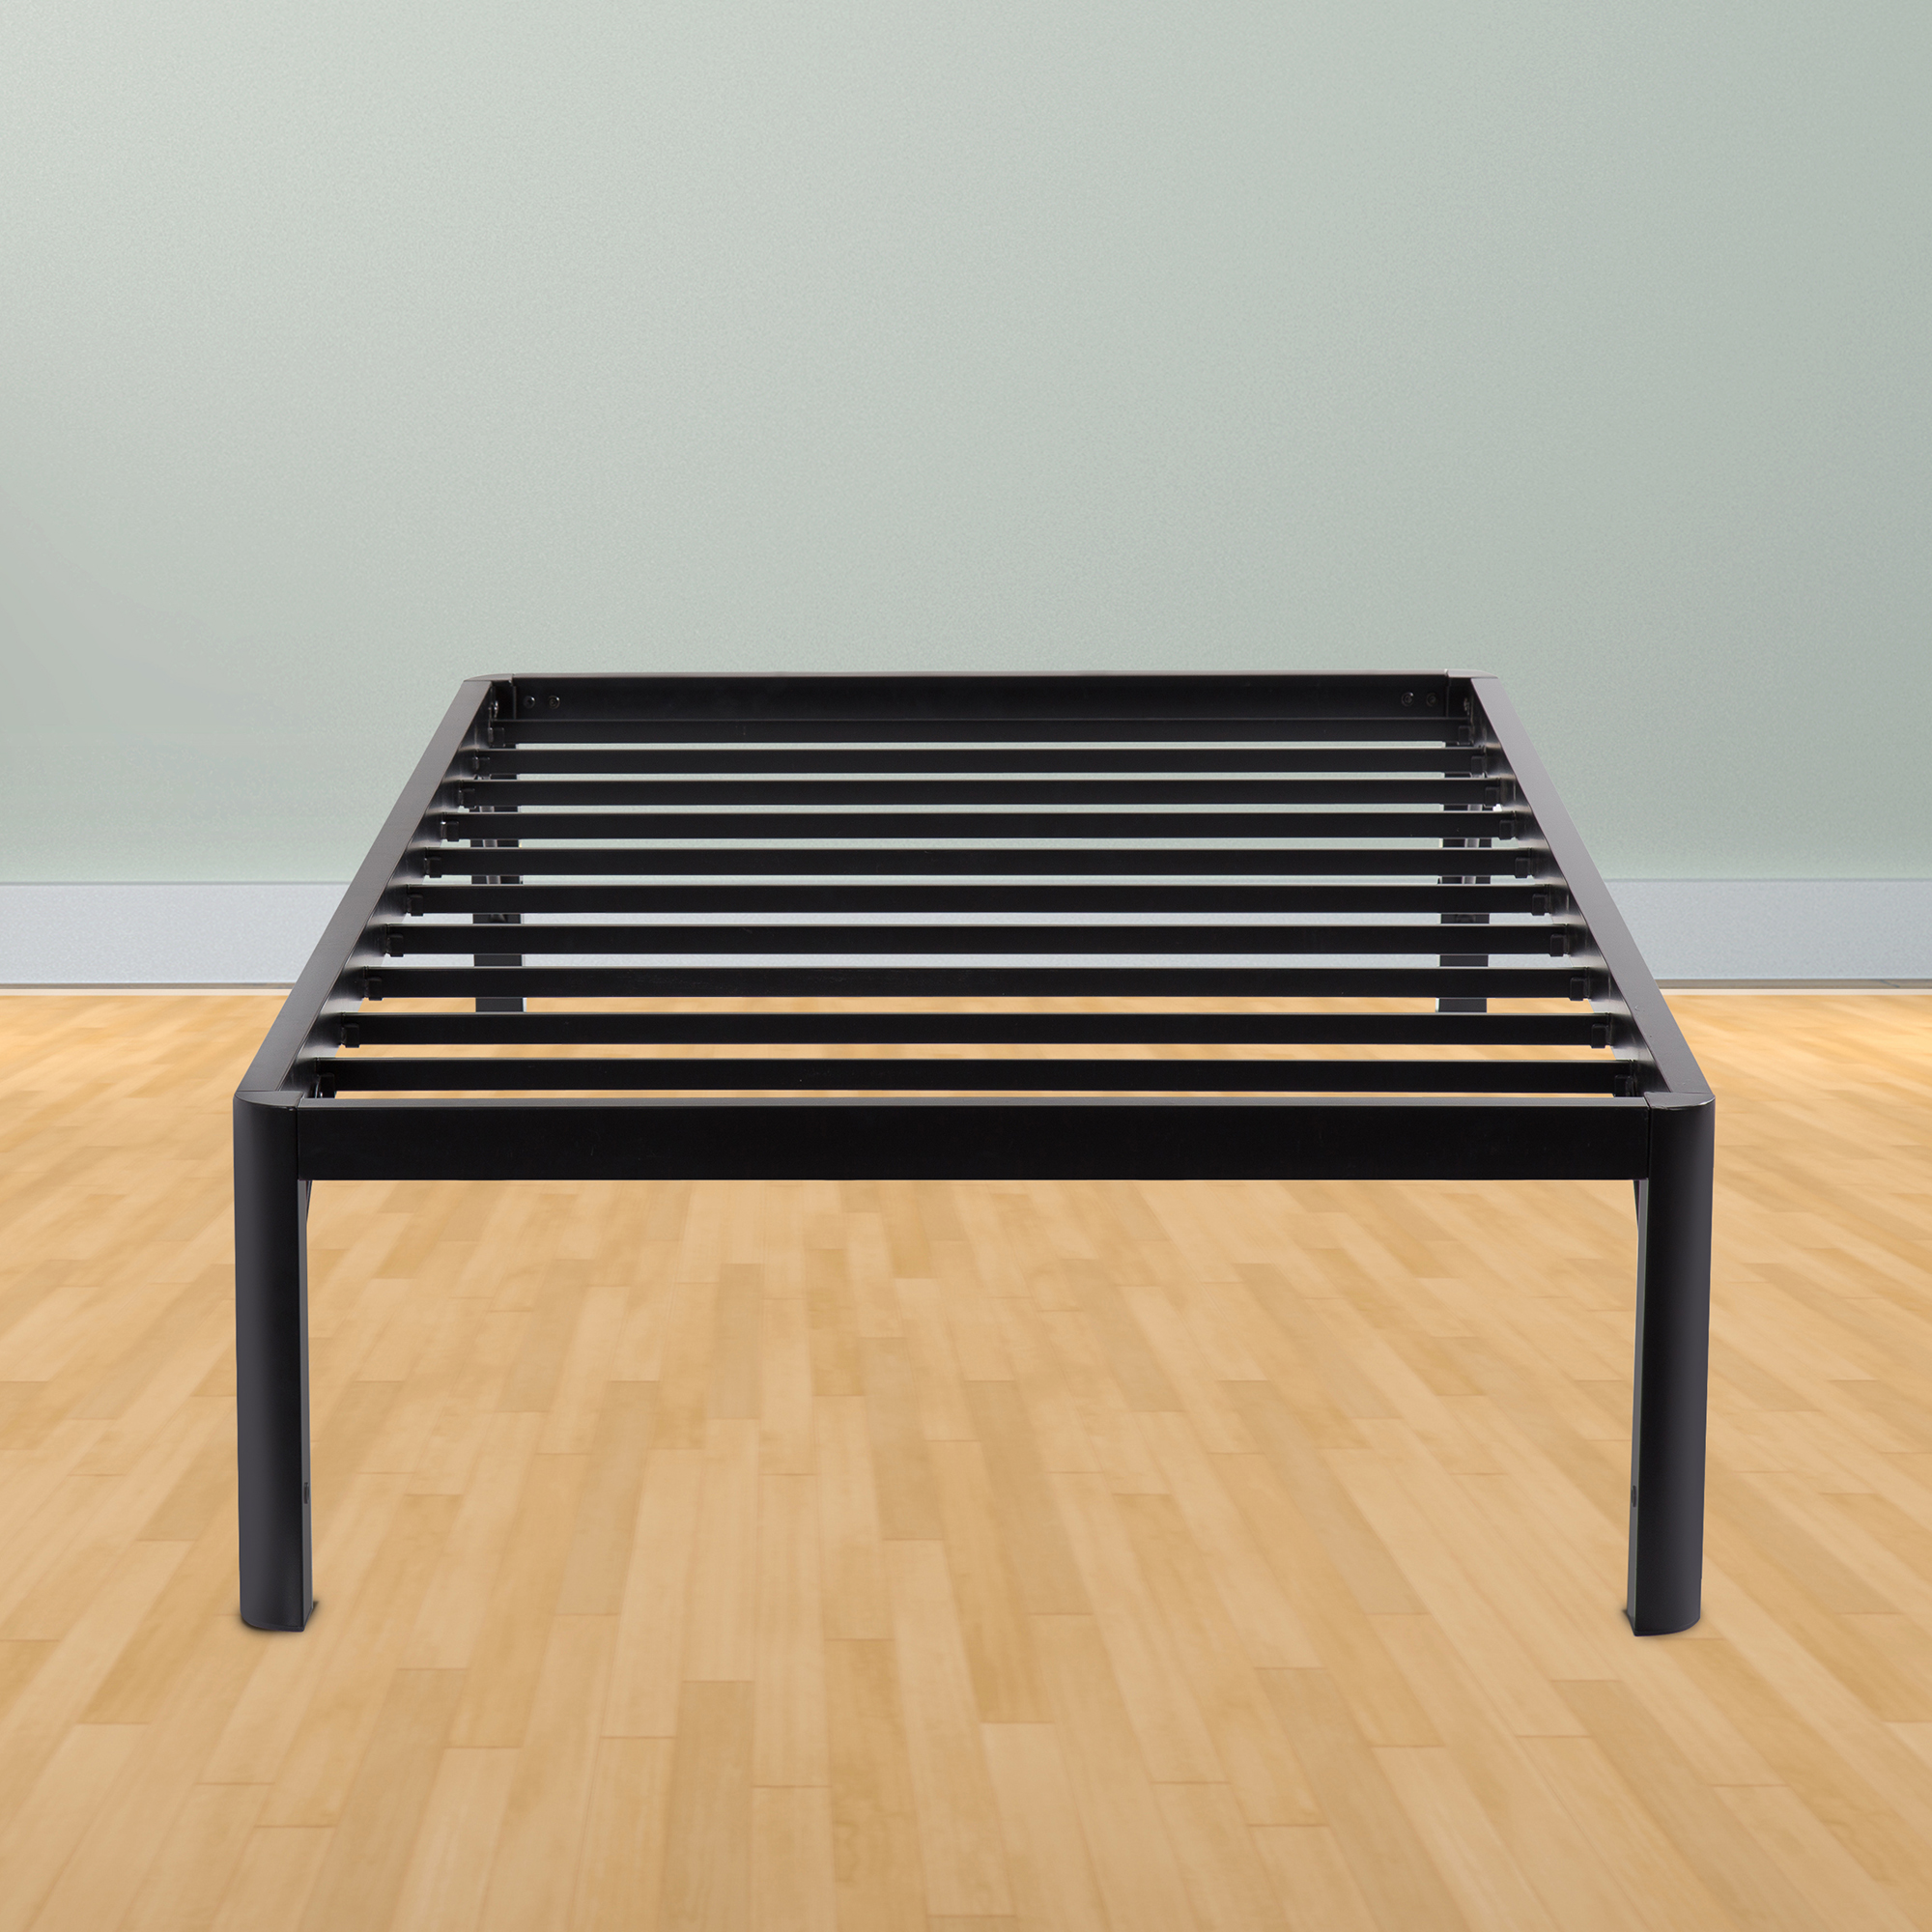 16-Inch High Profile Tall Steel Slat Bed Frame SS-3000   College Bed   School Mattress   TWIN   16 INCH by Grantec Co., Ltd